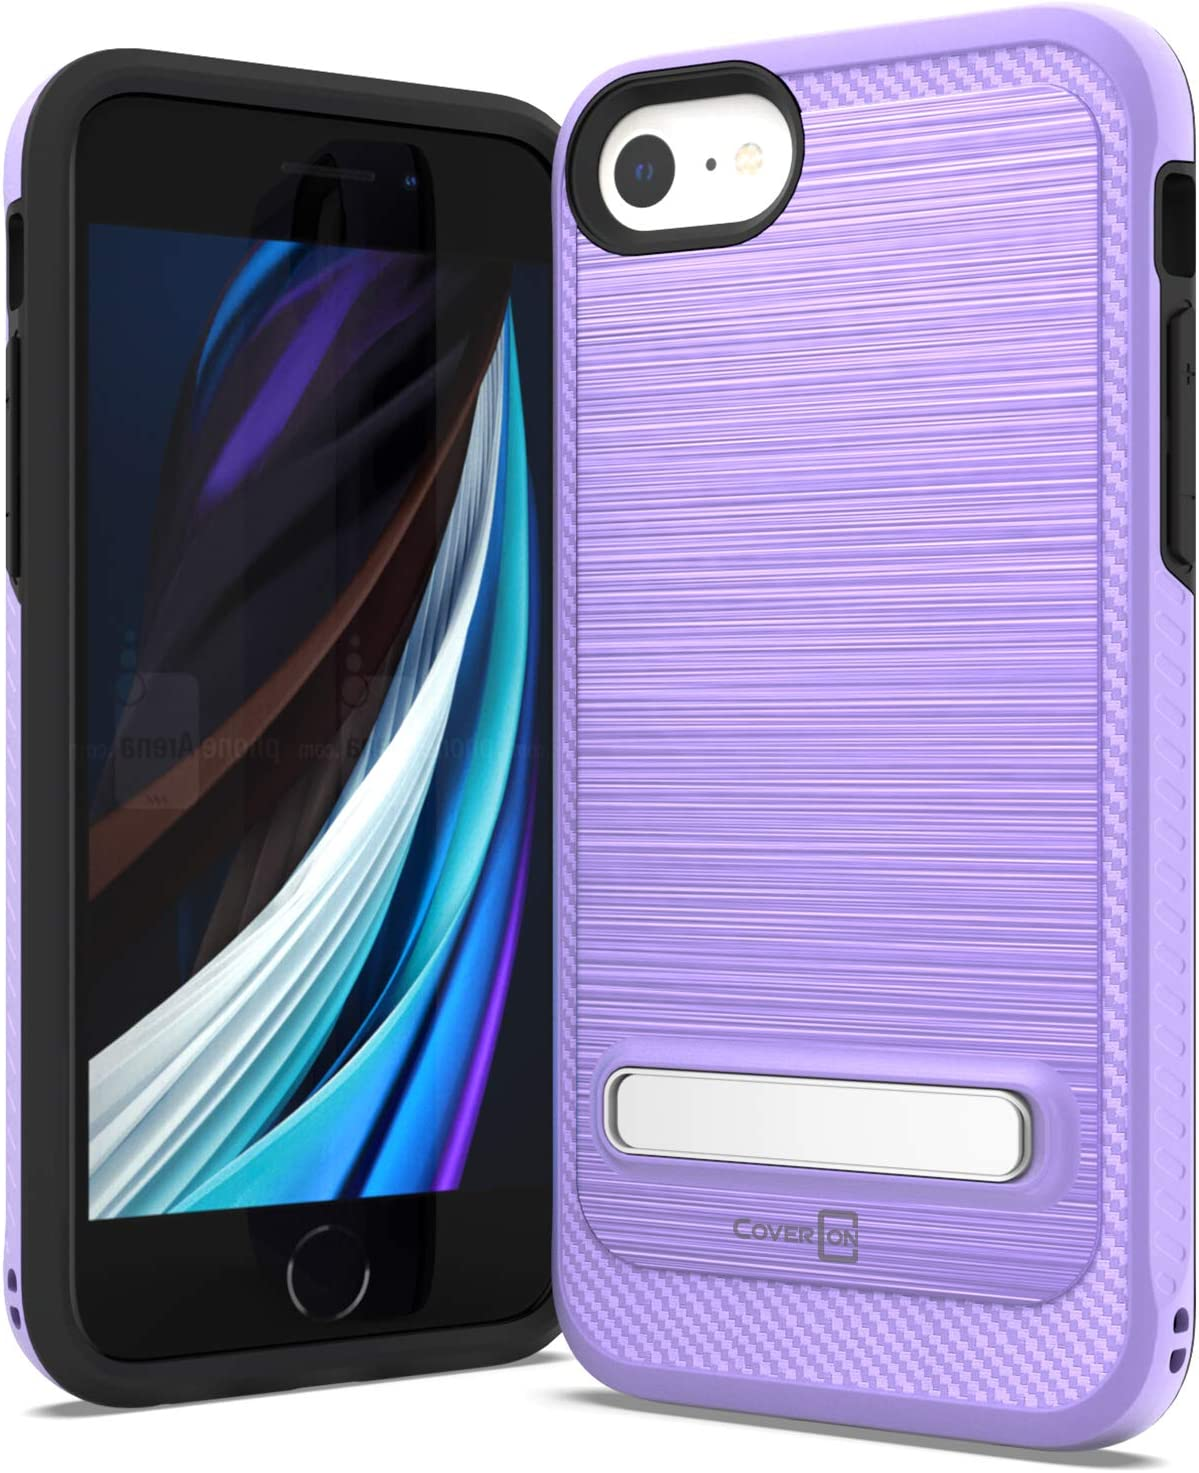 CoverON Metal Kickstand Designed for iPhone SE Case (2020) / iPhone 8/7 Case, Reinforced Magnetic Stand Hybird Rugged Shockproof Phone Cover - Purple